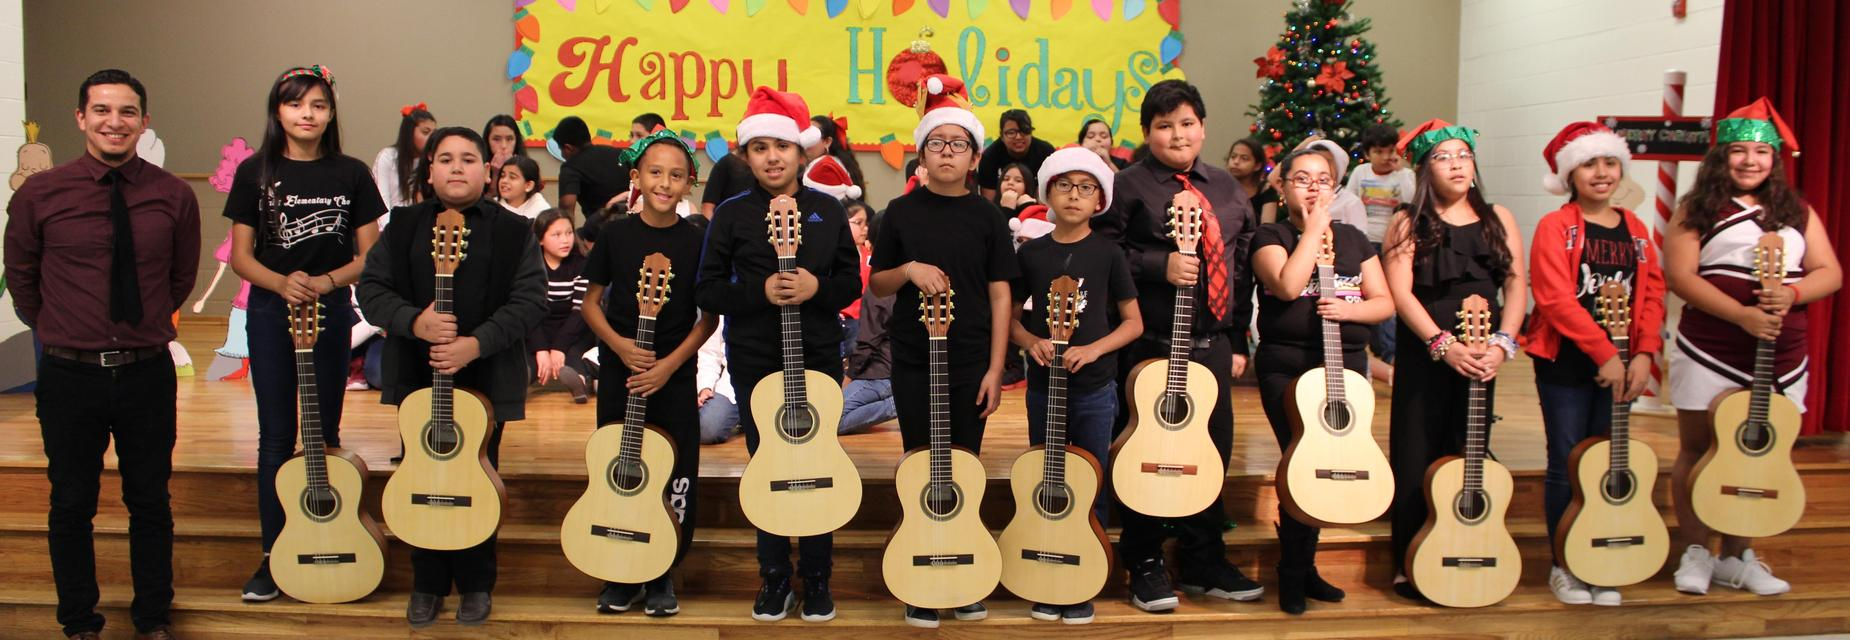 Guitar club on stage